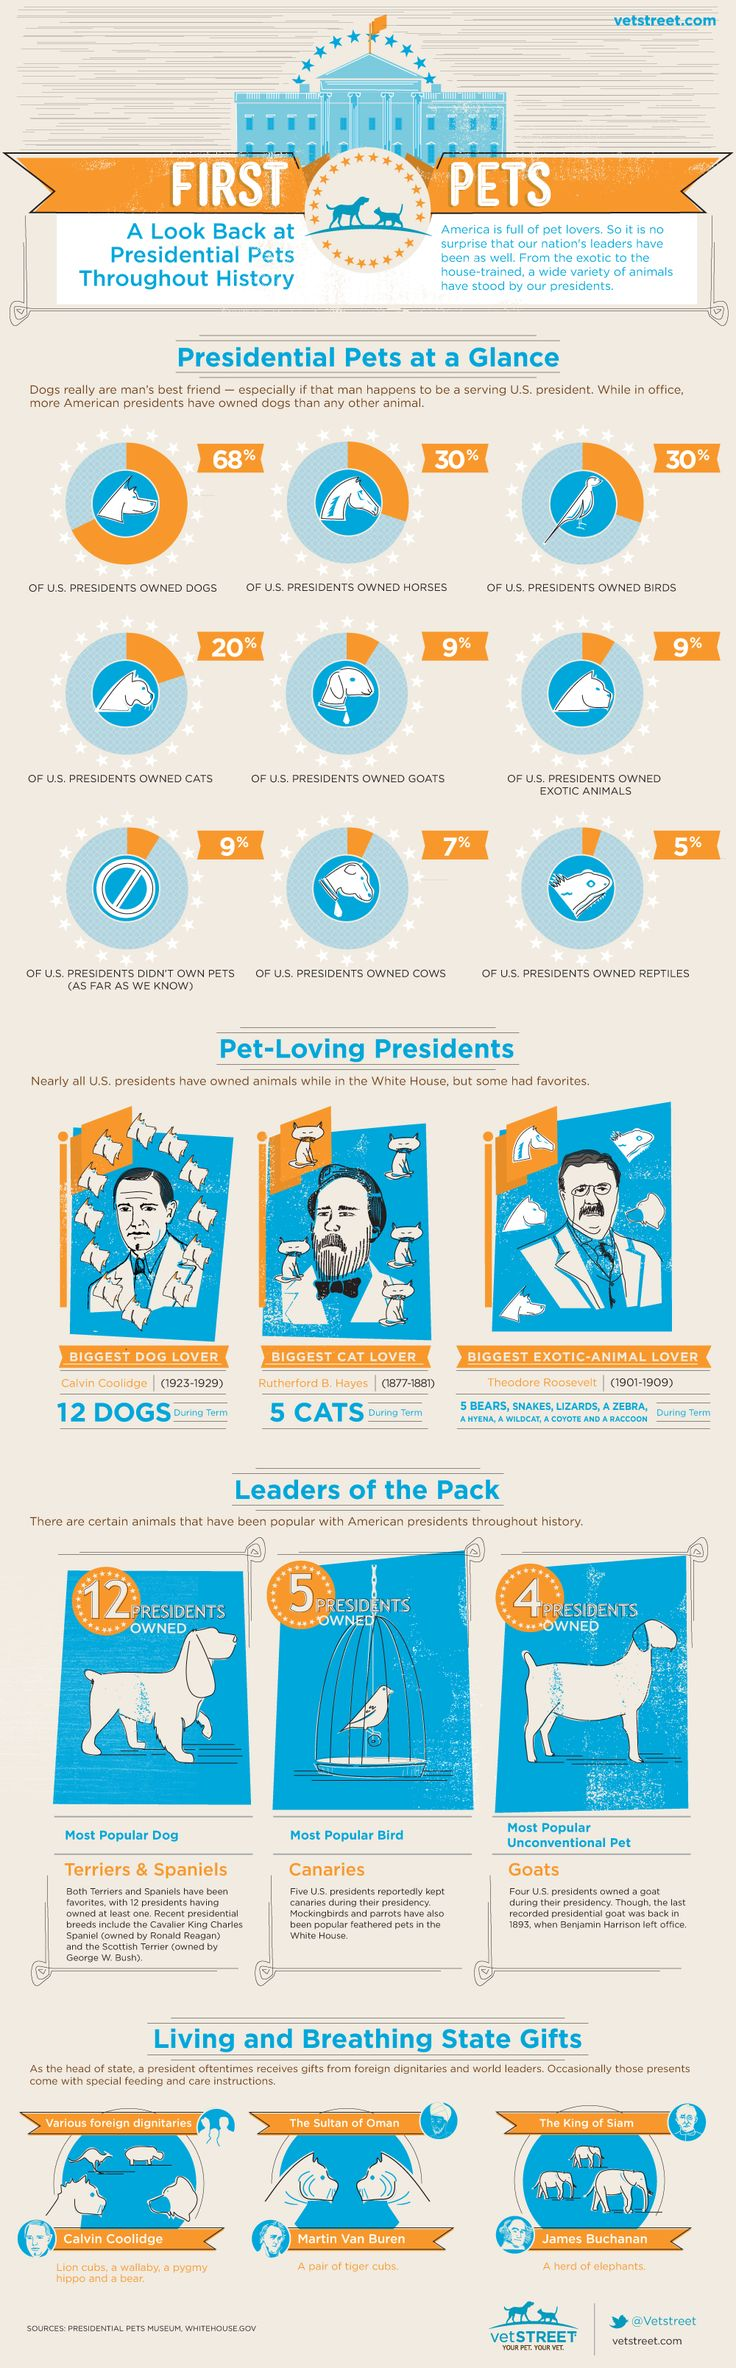 First Pets: Presidential Pets Throughout History